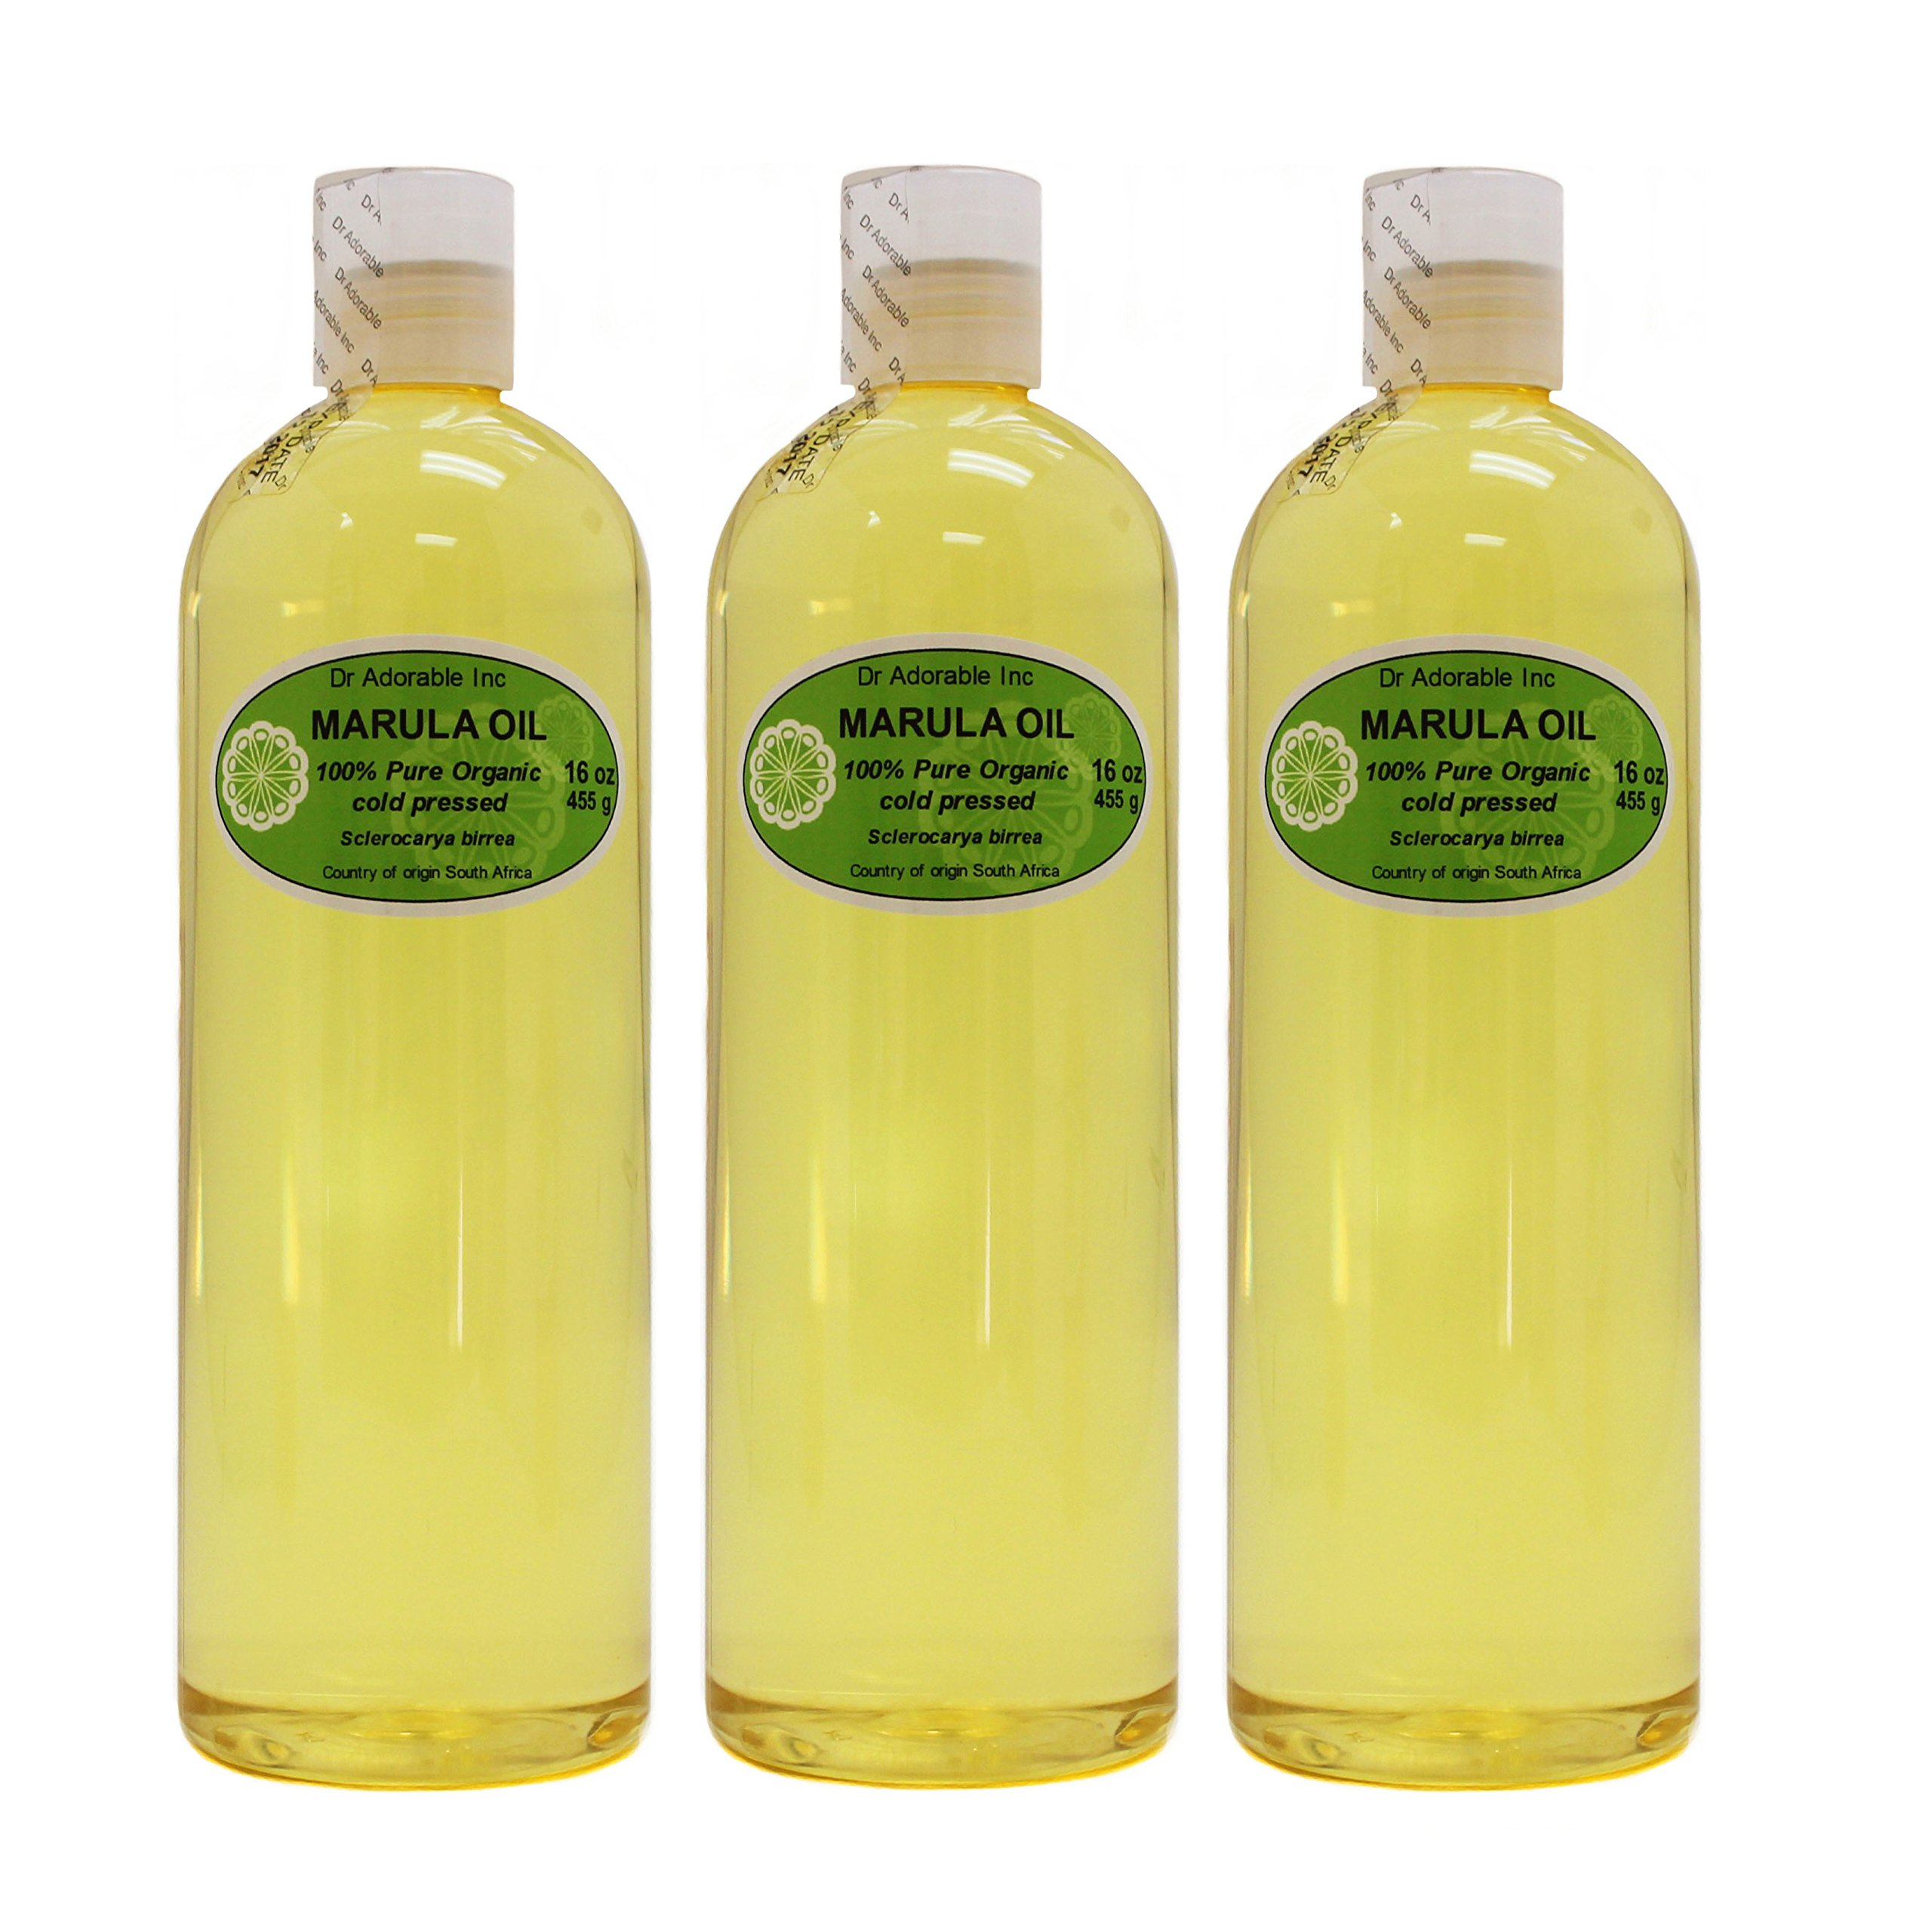 MARULA CARRIER OIL BY DR.ADORABLE 100% PURE ORGANIC COLD PRESSED 48 oz/3 PINT